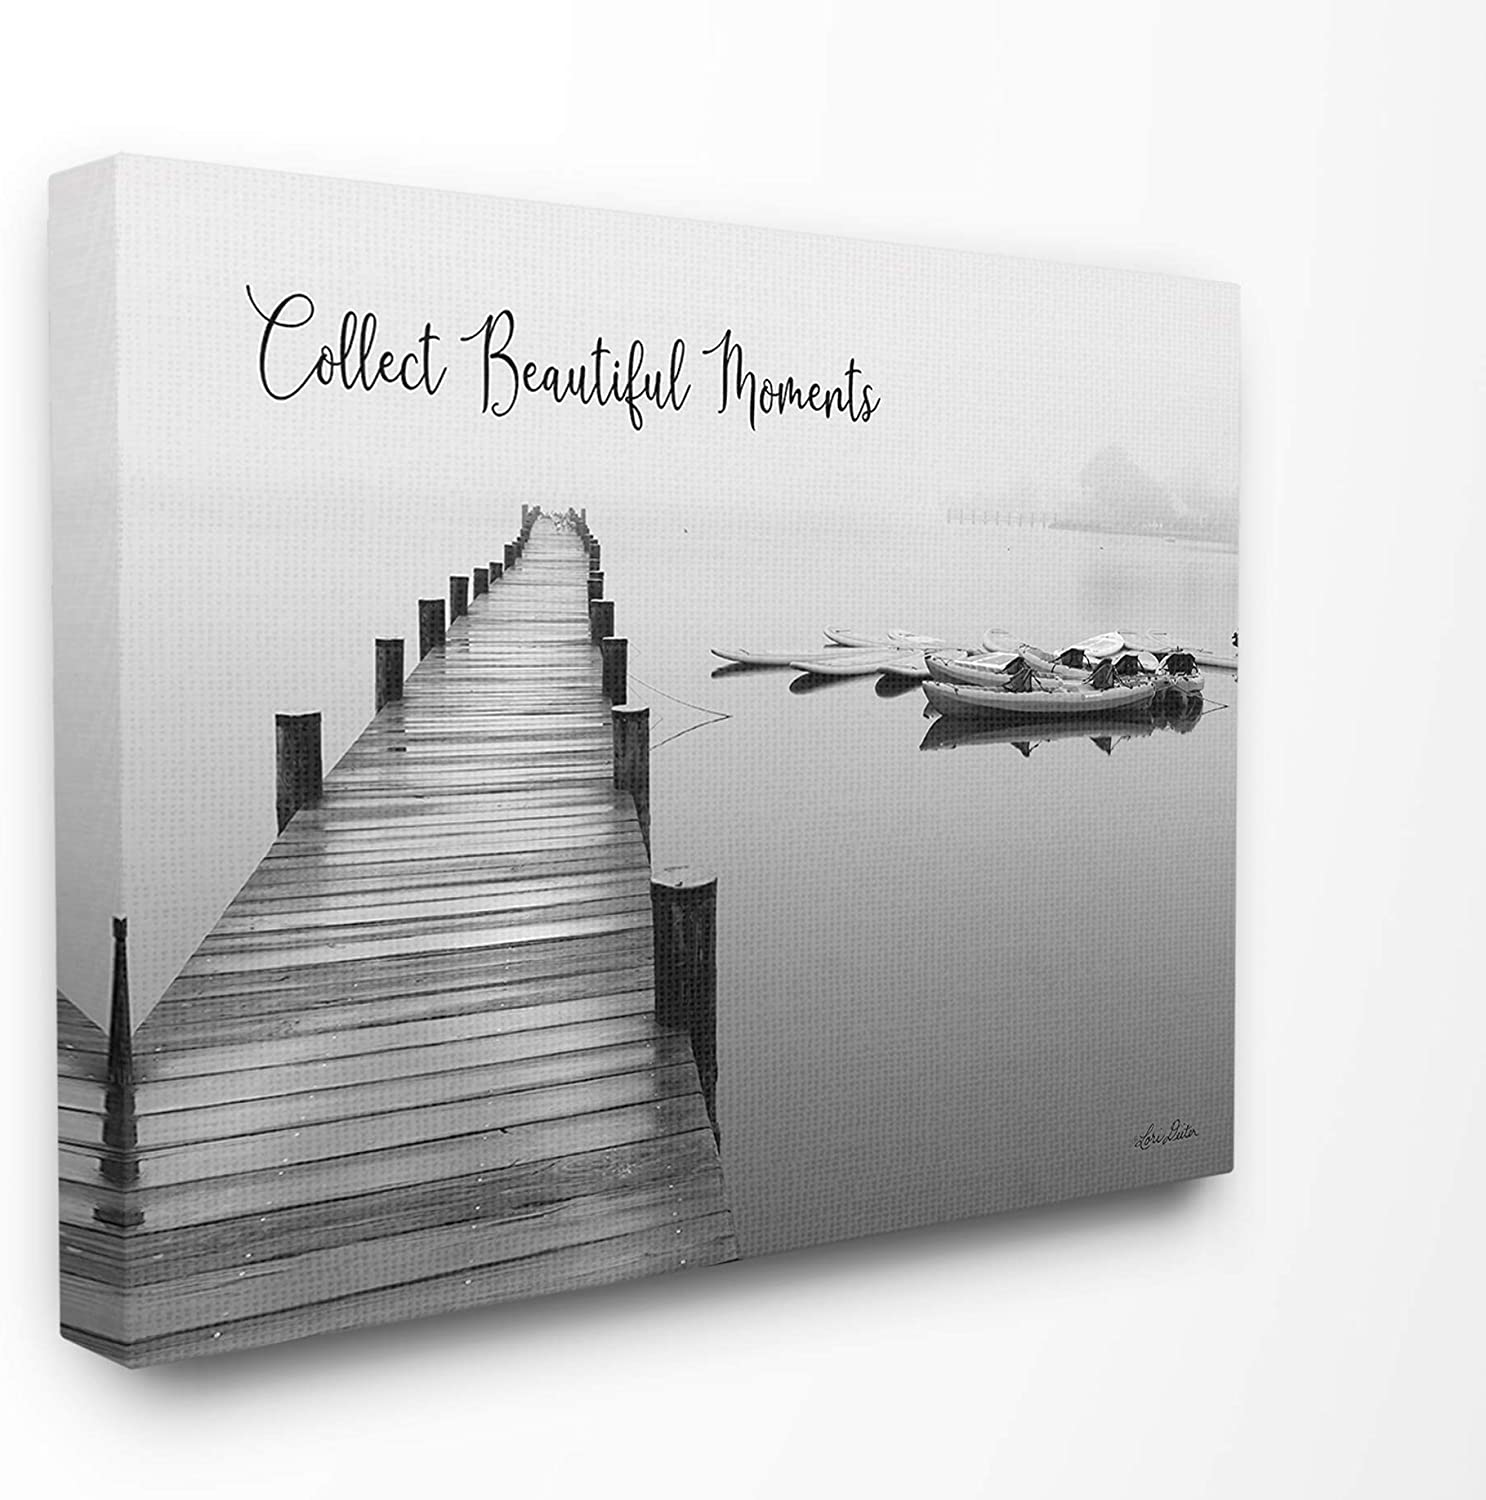 The Stupell Home Decor Black and White Calm Lake Photography Collect Beautiful Moments Stretched Canvas Wall Art 16x20 Multicolor